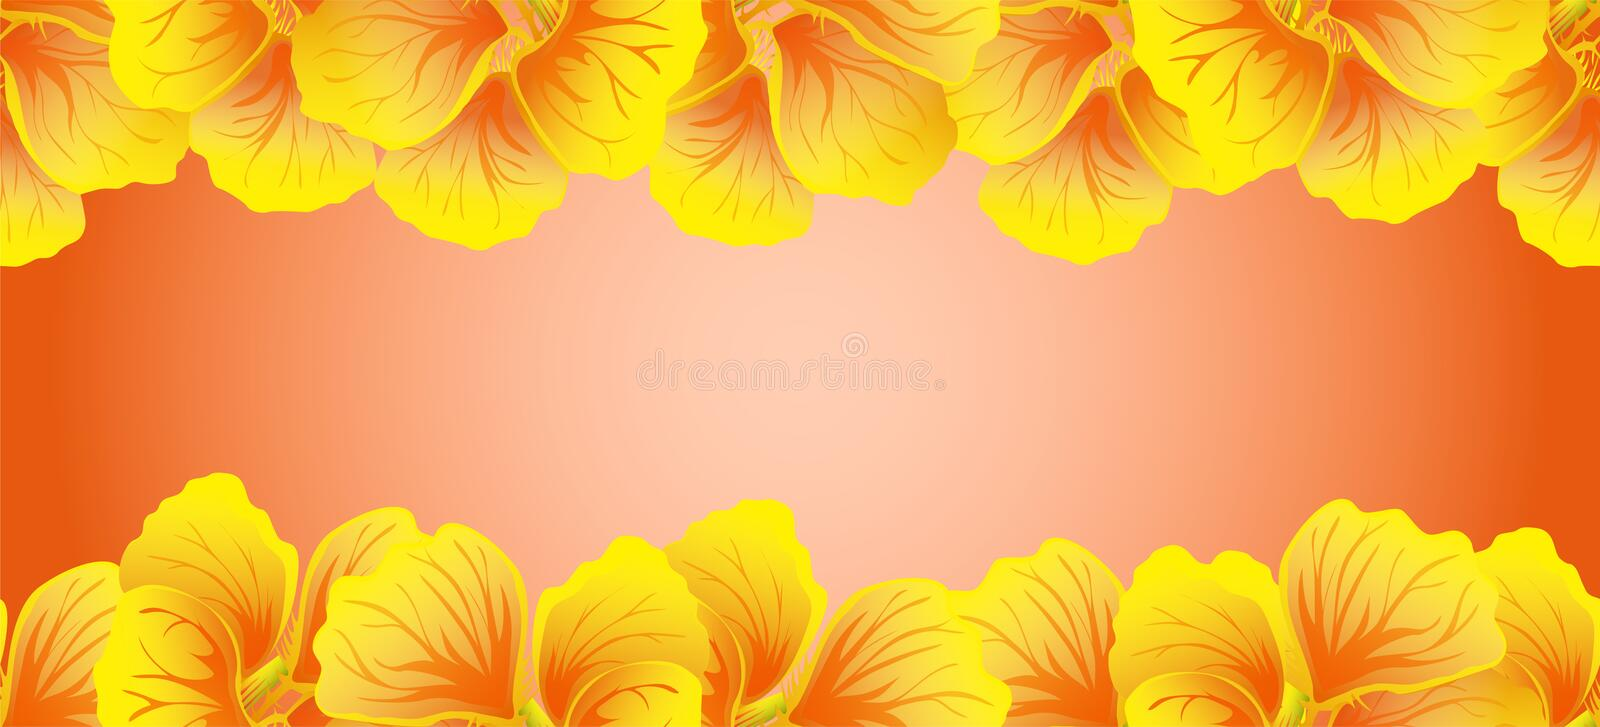 Bright Nasturtium Seamless border. Yellow flowers. Beautiful Horizontal banner. Red background. Card, invitation, poster, greeting. Design. Vector illustration royalty free illustration